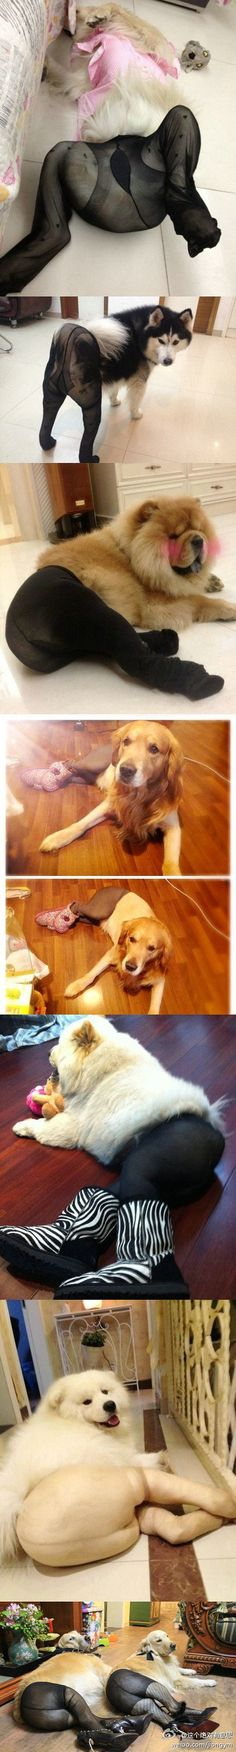 Dogs in pantyhose... too funny